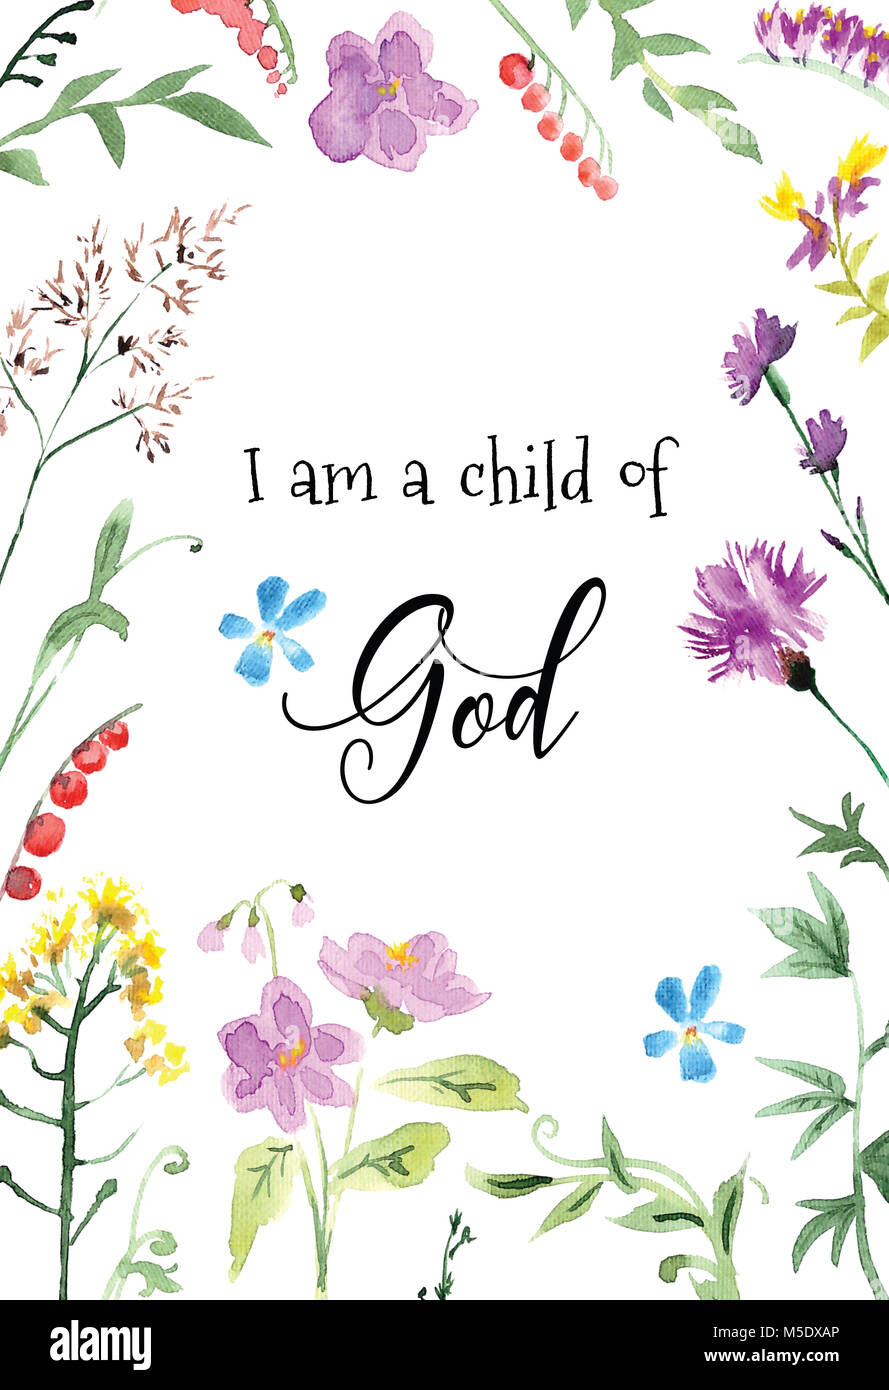 Children Bible Quotes Printable Art I Am A Child Of God Stock